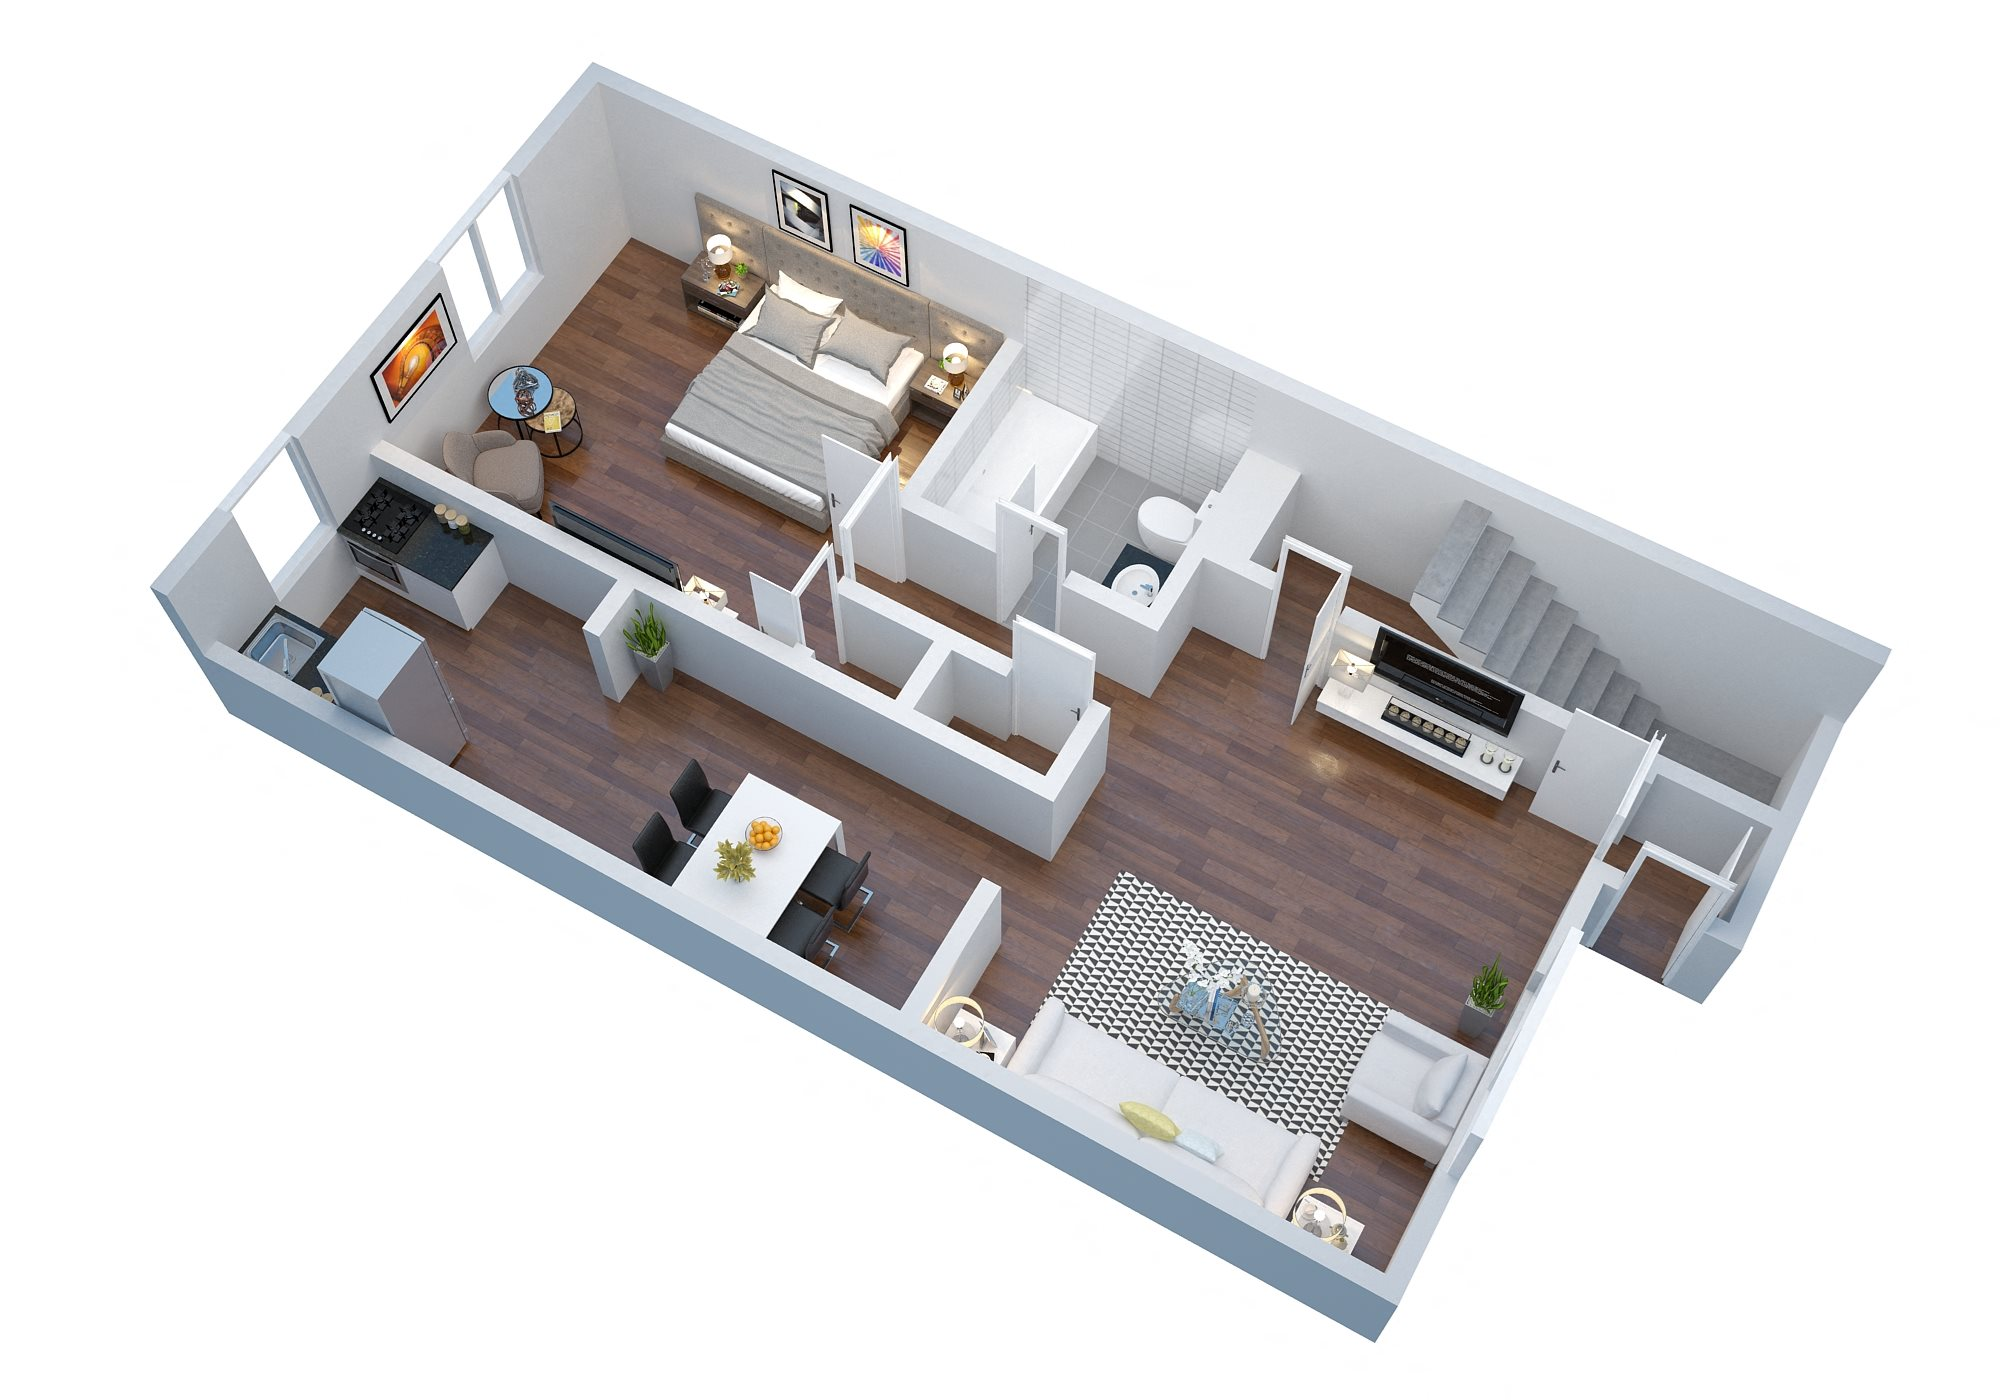 1 Bedroom with Garage Floor Plan 4